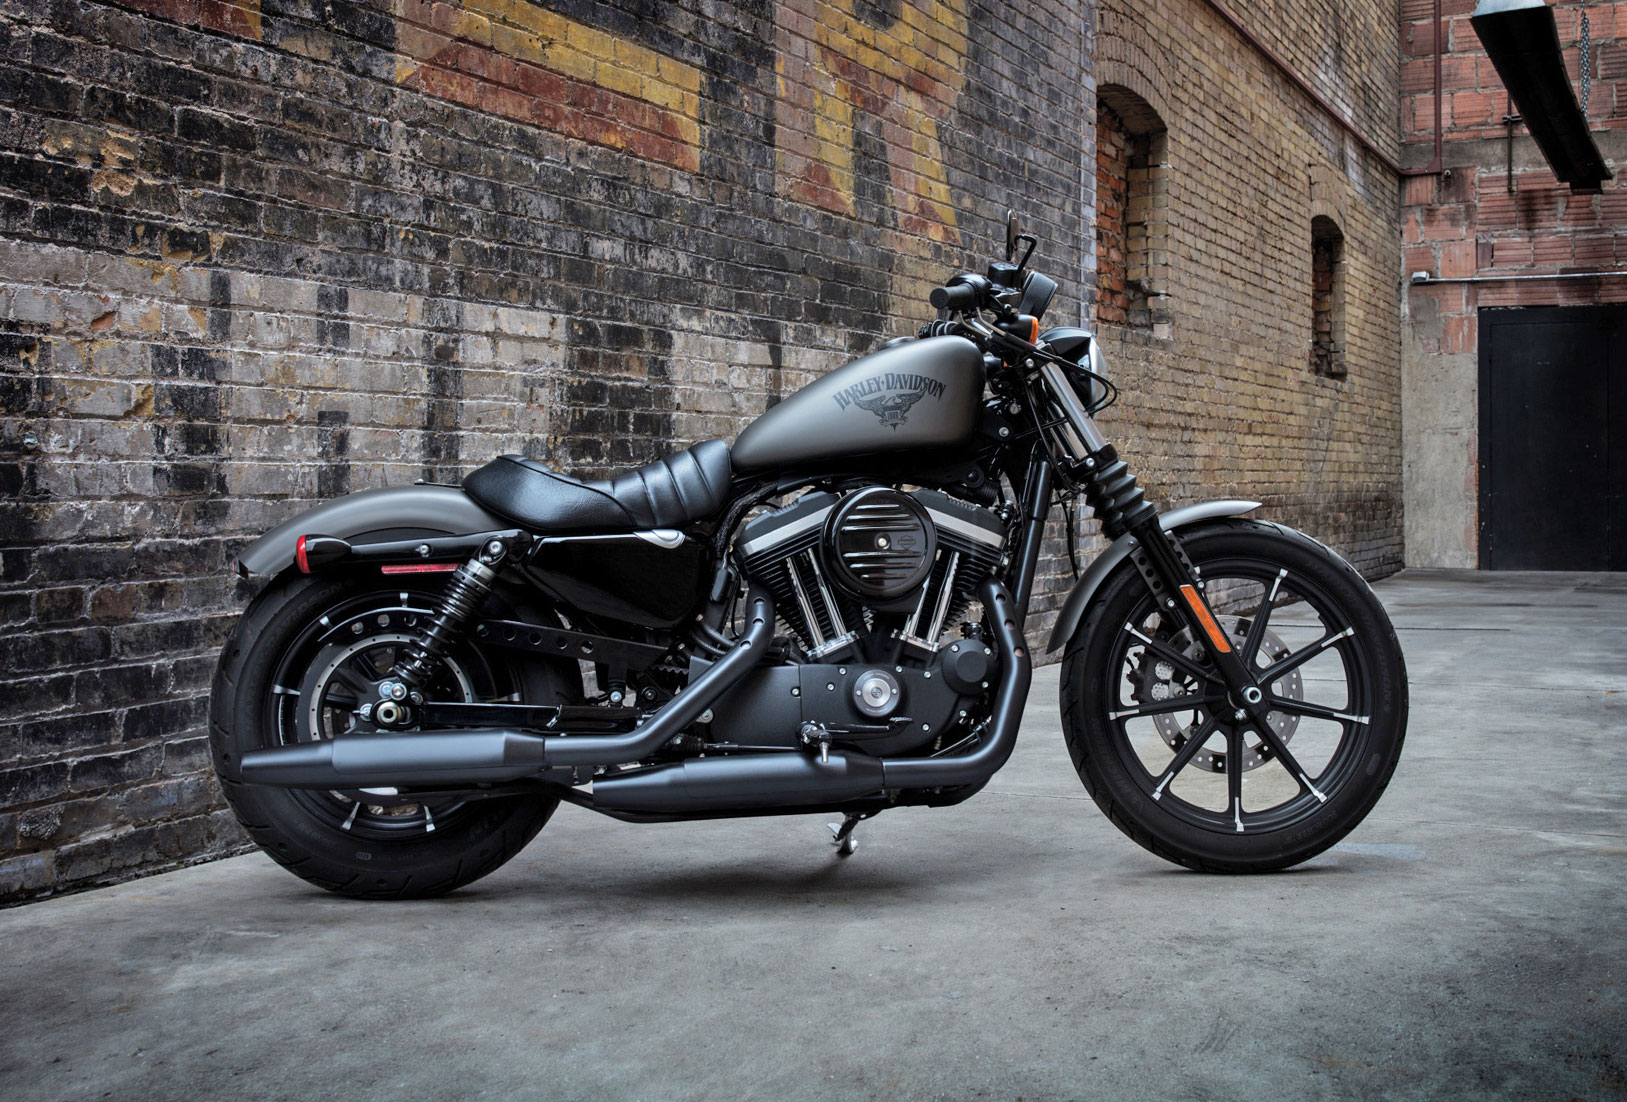 Harley Davidson: Harleys Sold In The US Will Still Be Built In The US